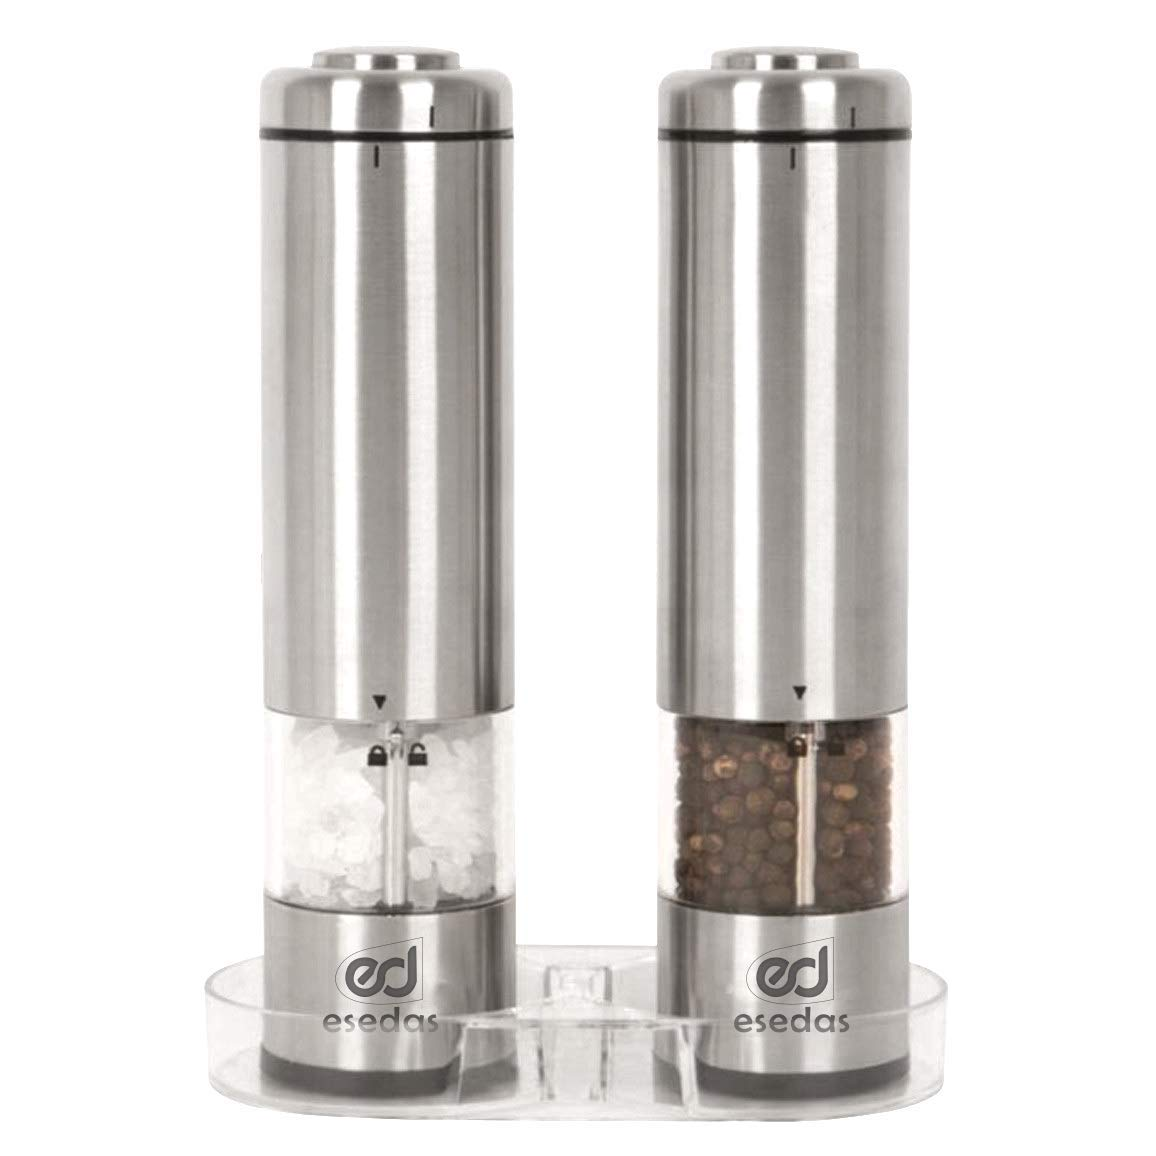 Electric Salt and Pepper Grinder Set (2) by Esedas - Battery Operated Stainless Steel Mill - Coarse Adjustable Mechanism - One Handed Shaker with LED Light and Rubber Lid for Cleaner Kitchen Table by Esedas